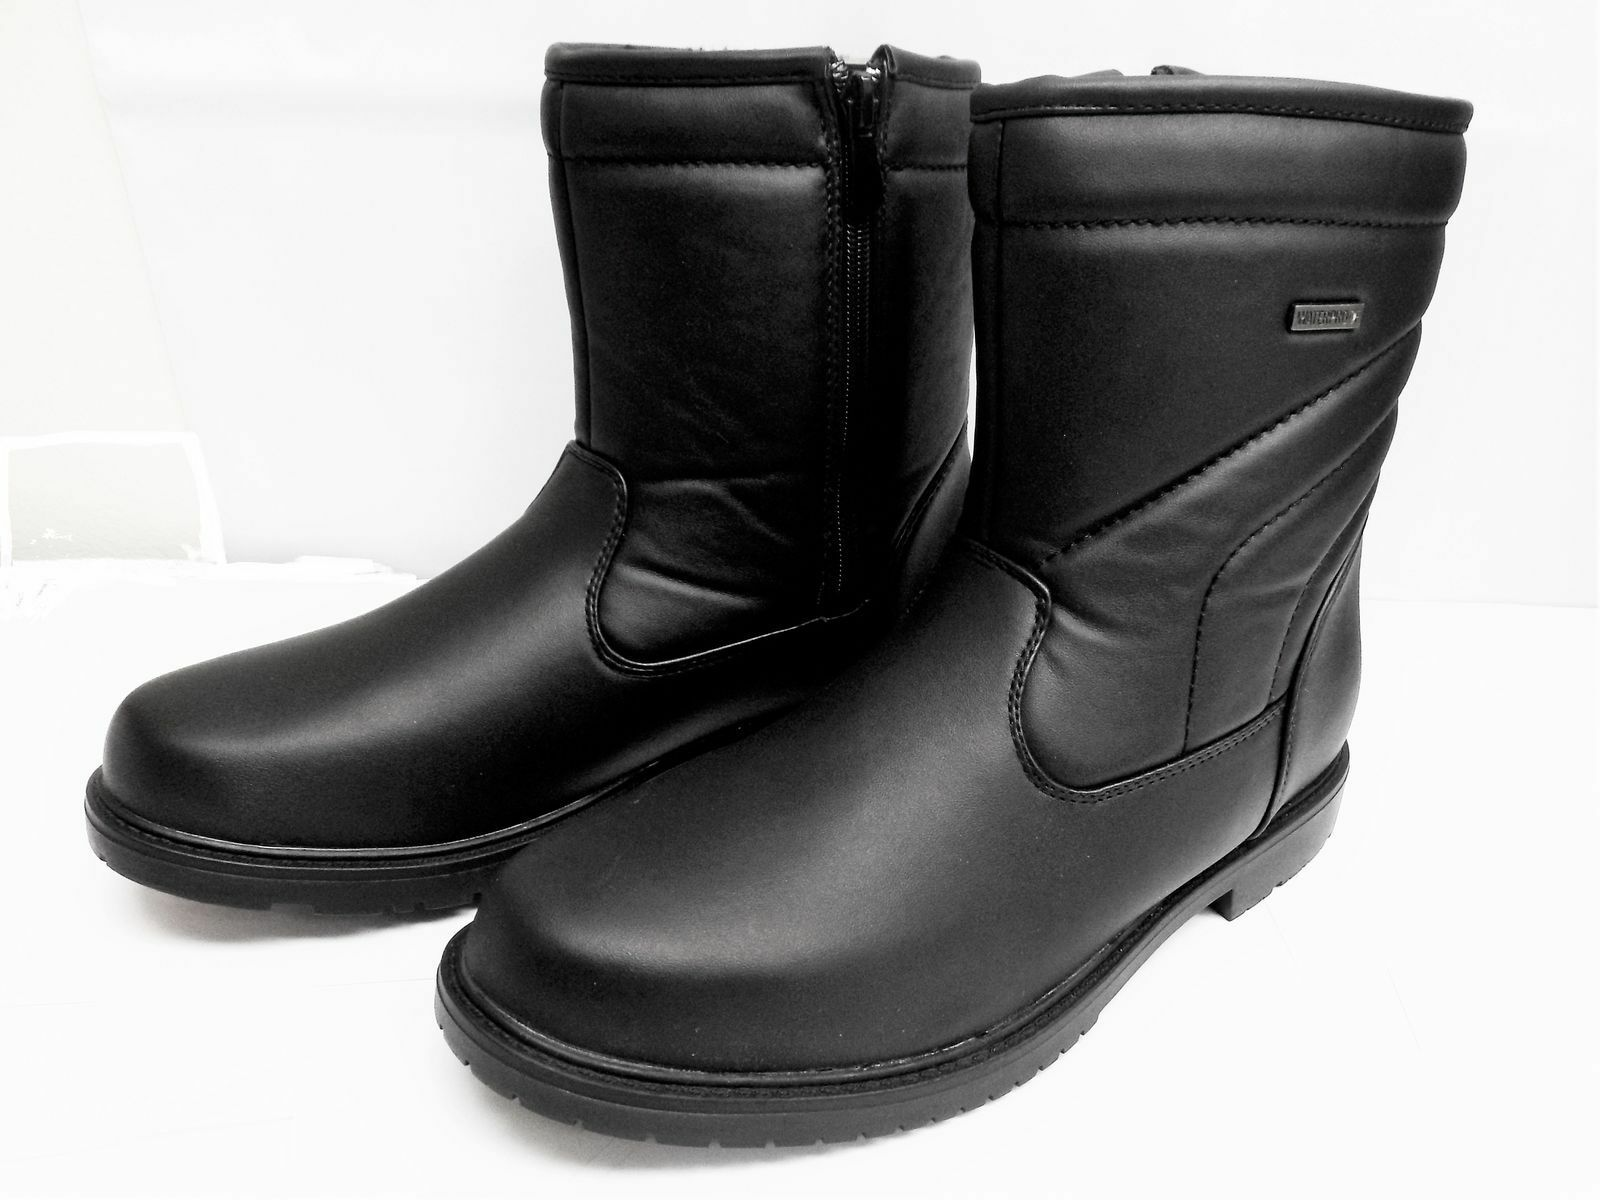 Mens CLIMATE X S700B Black Waterproof Side Zip Warm Lined Winter Boots